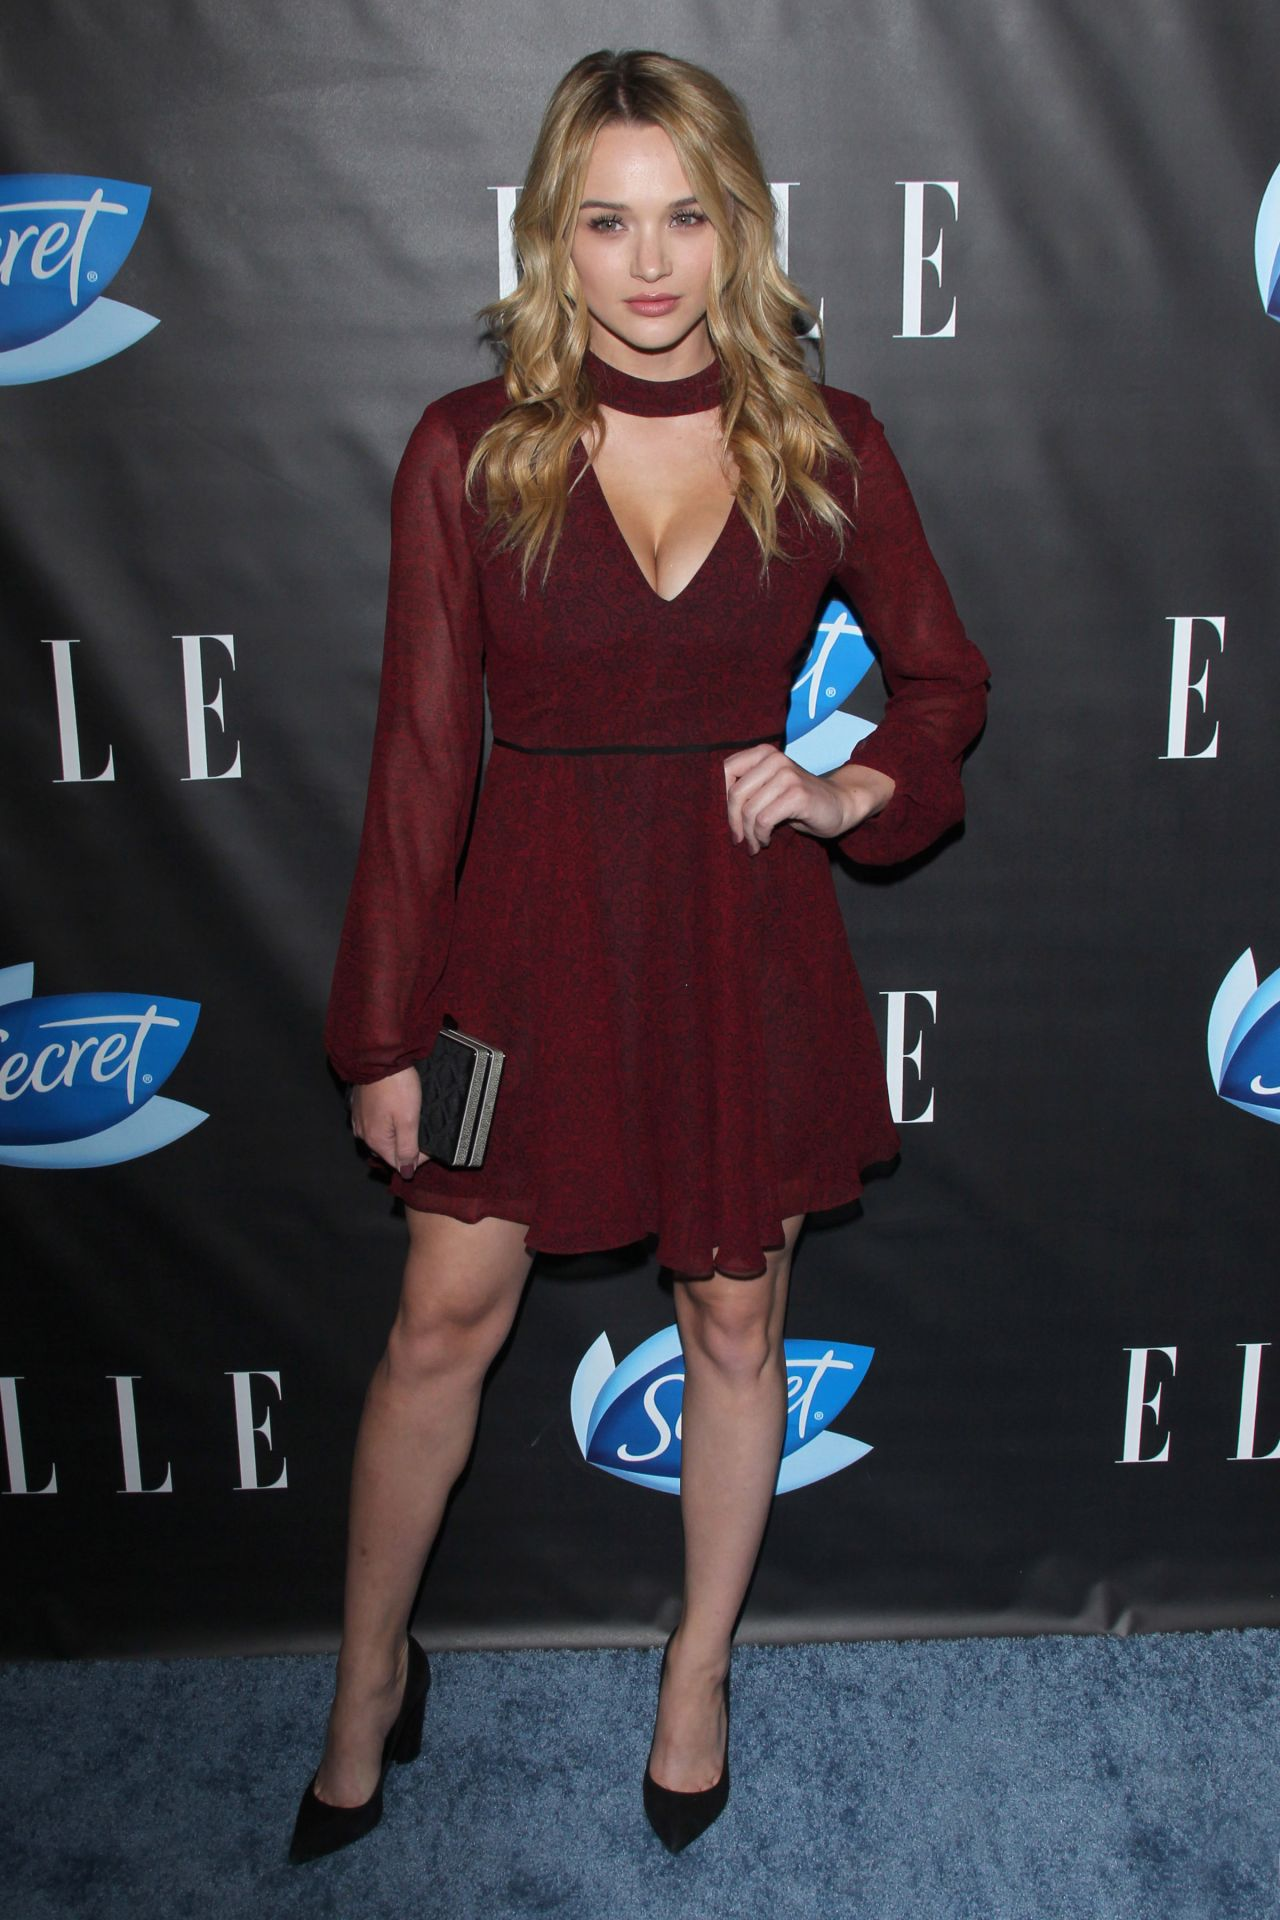 Hunter king 2016 gallery for Le elle apartments west hollywood